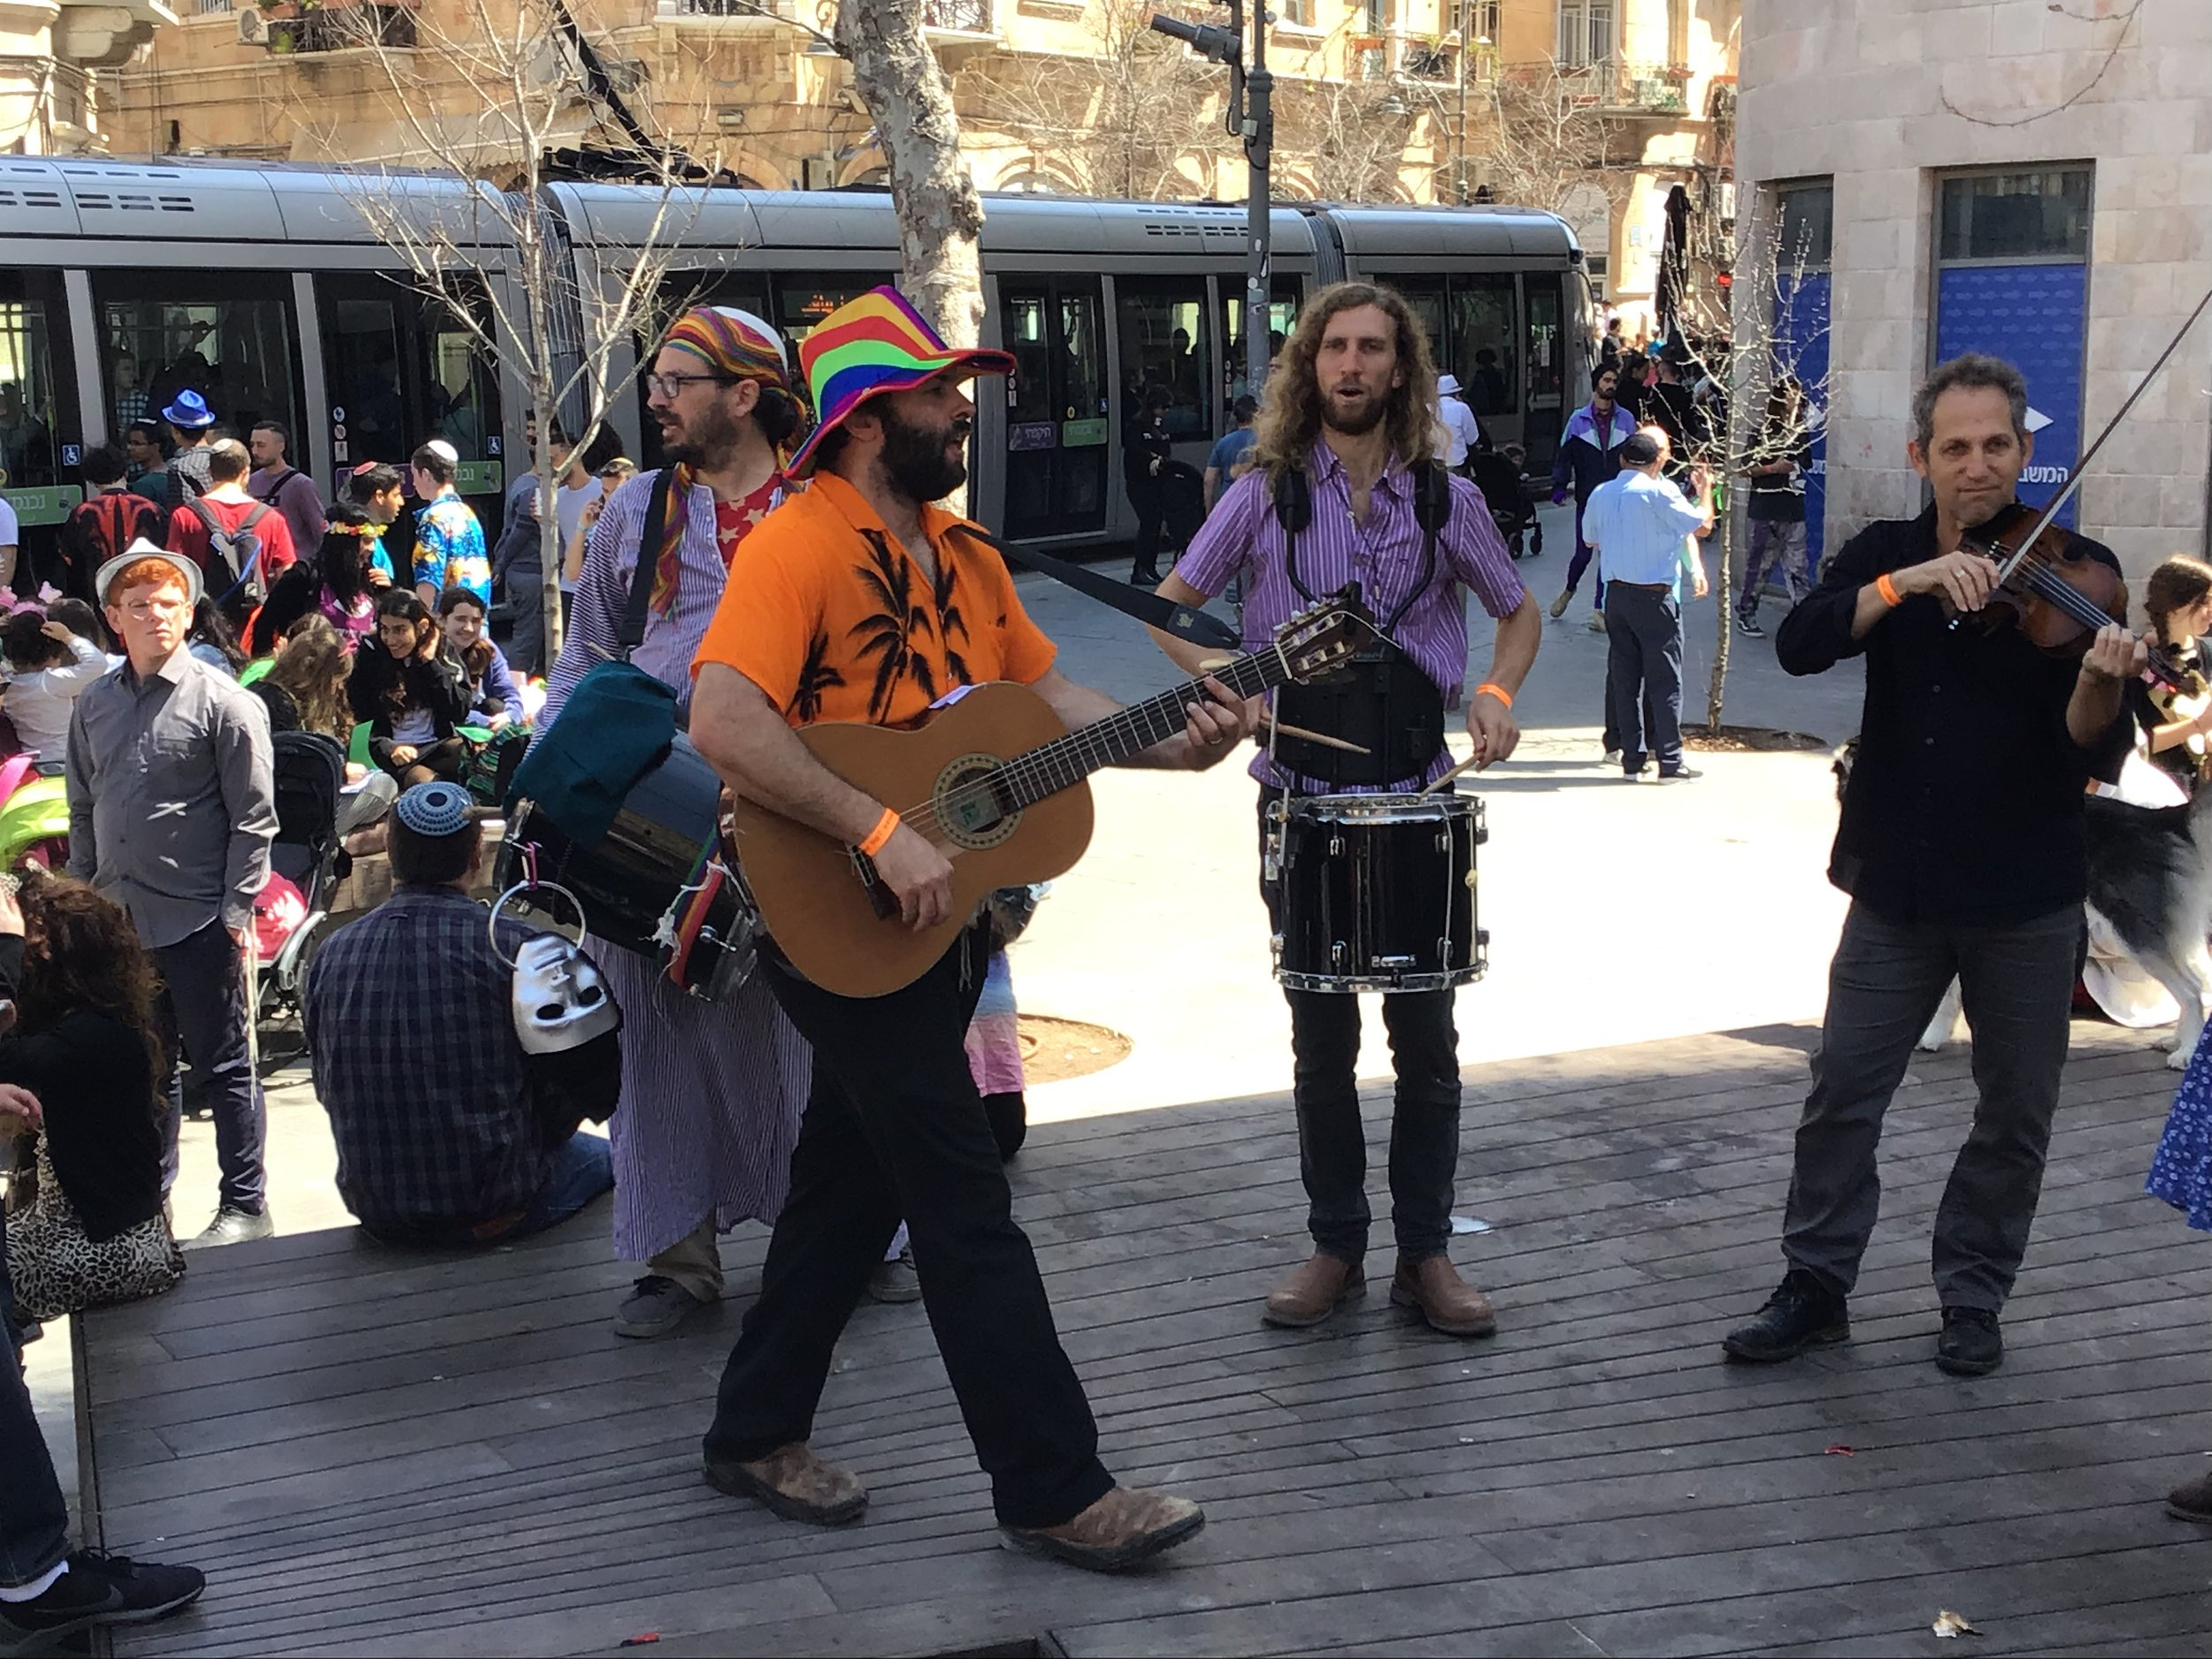 A band plays music in Jerusalem for the holiday Purim. Photo by Gil Zohar.